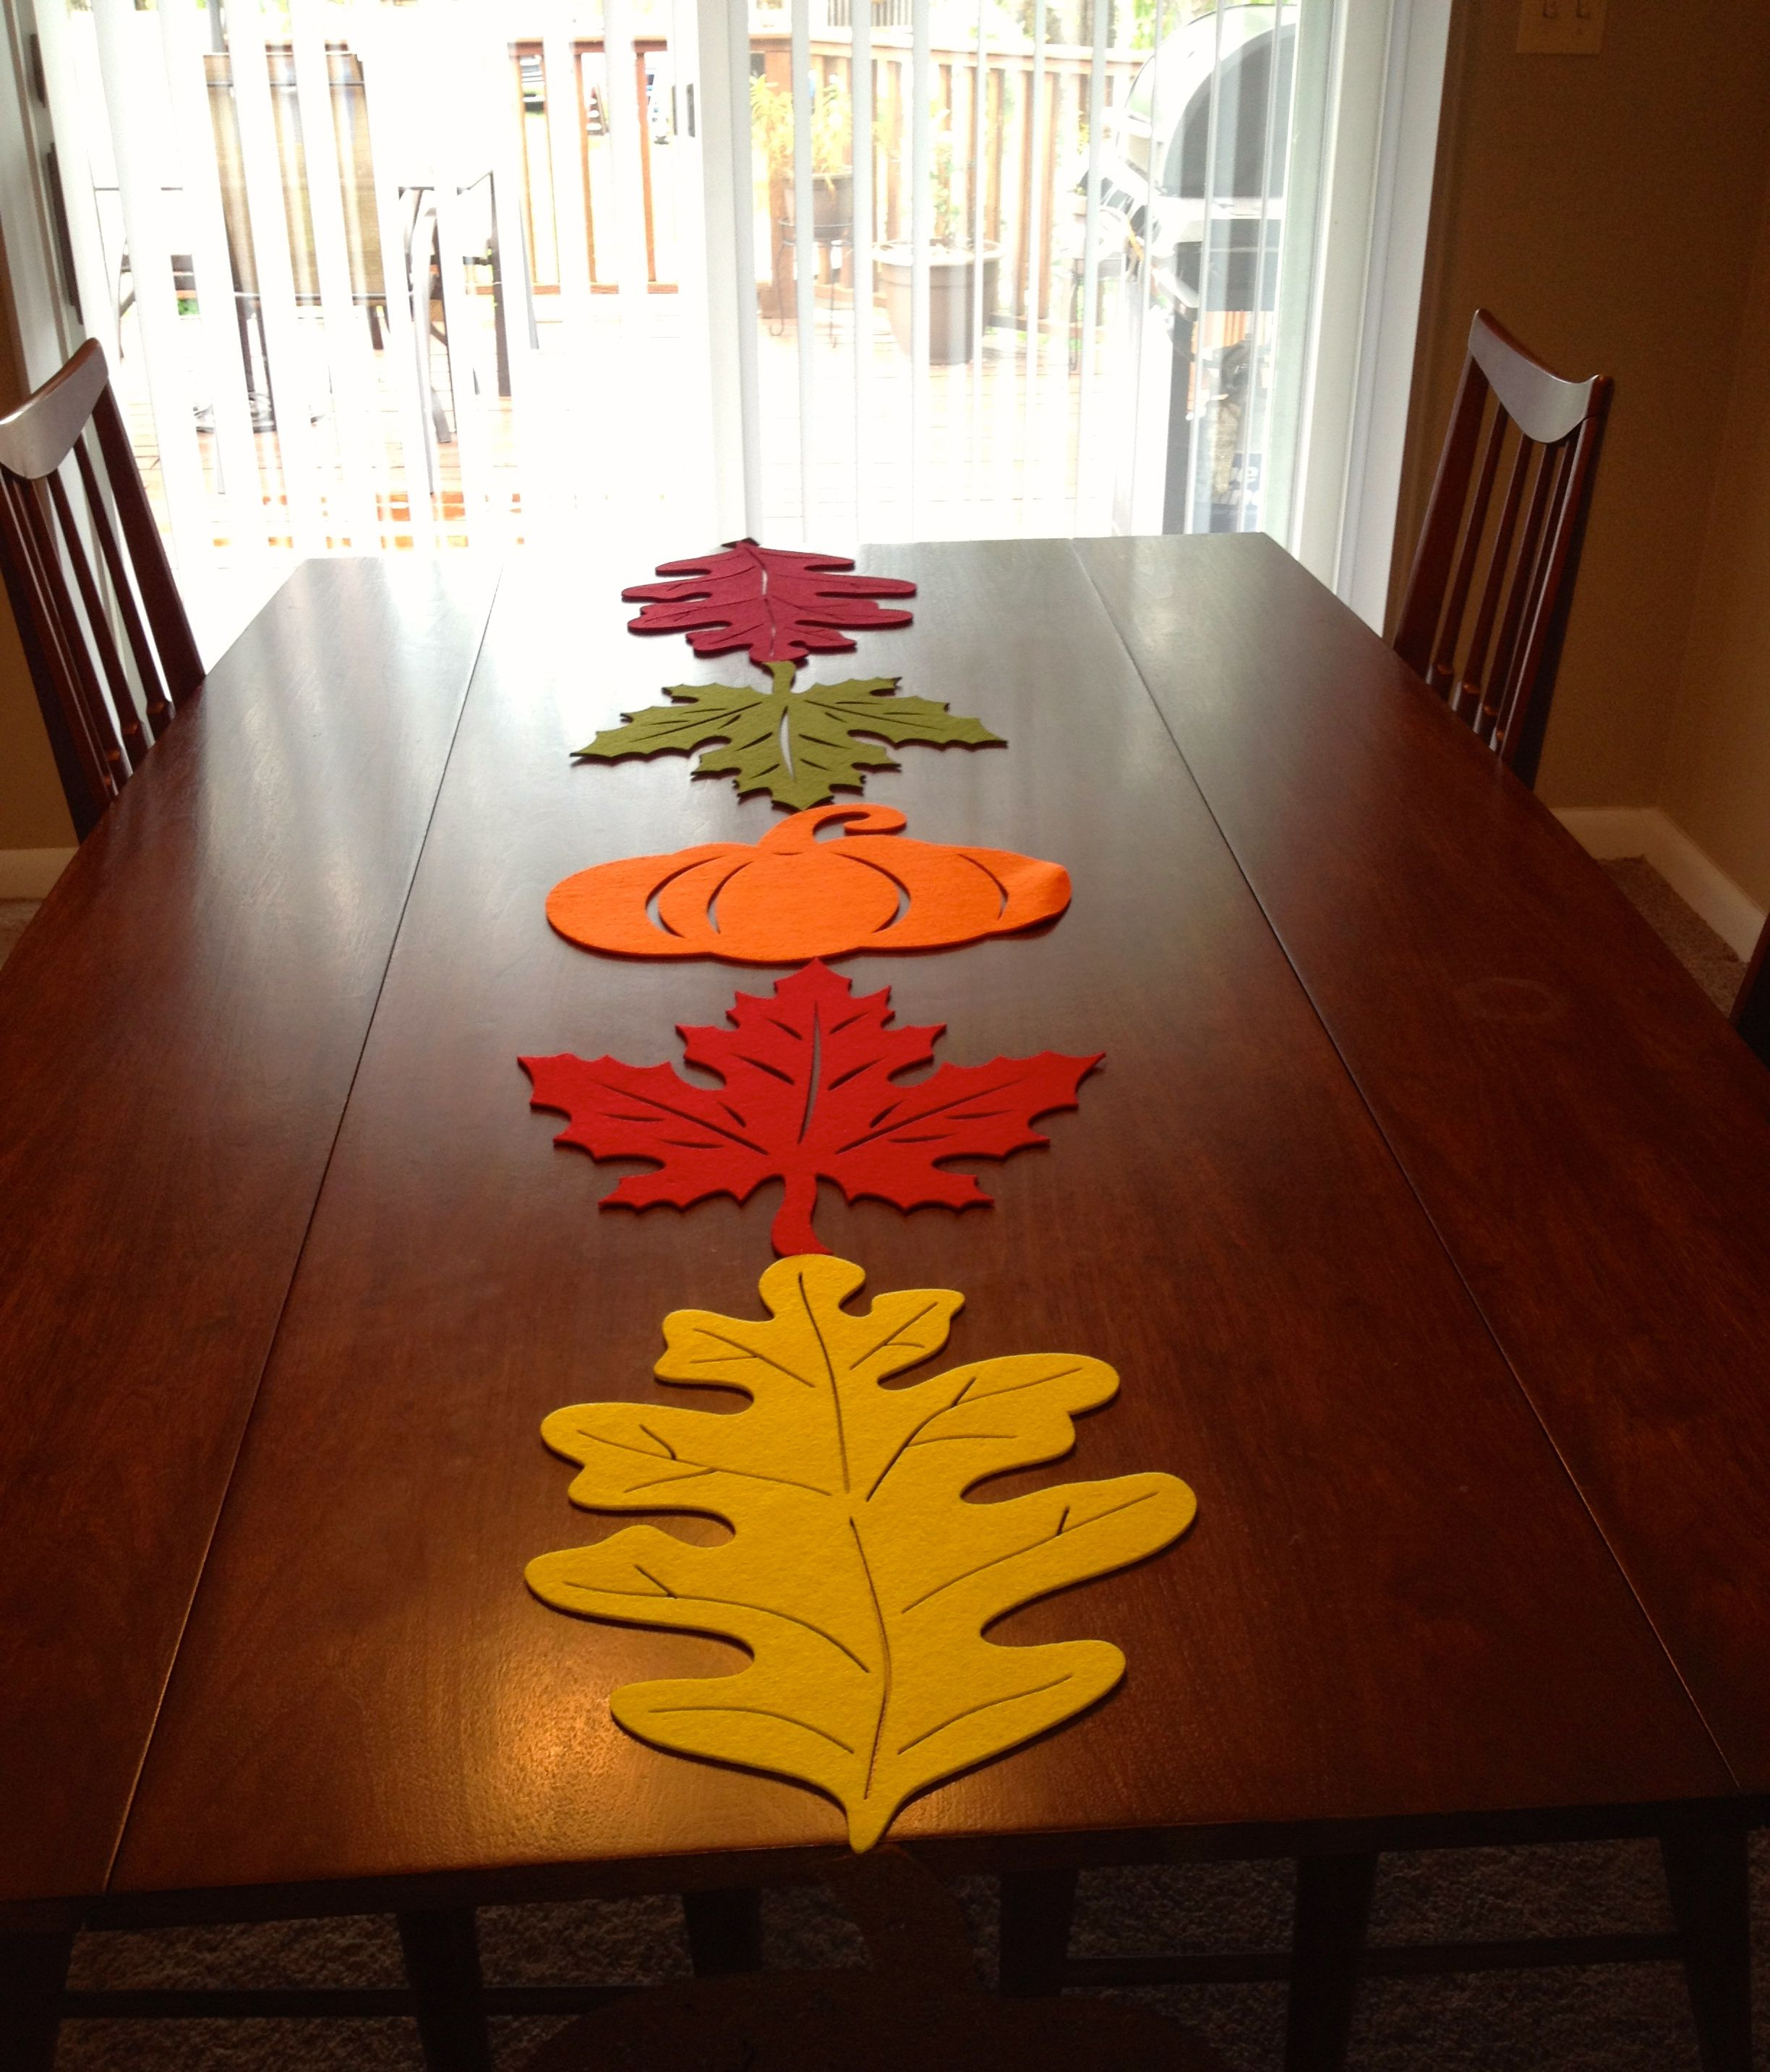 Diy Fall Table Runner Felt Leaves I Got Them From Michael S Sewn Together With Fishing Line 0